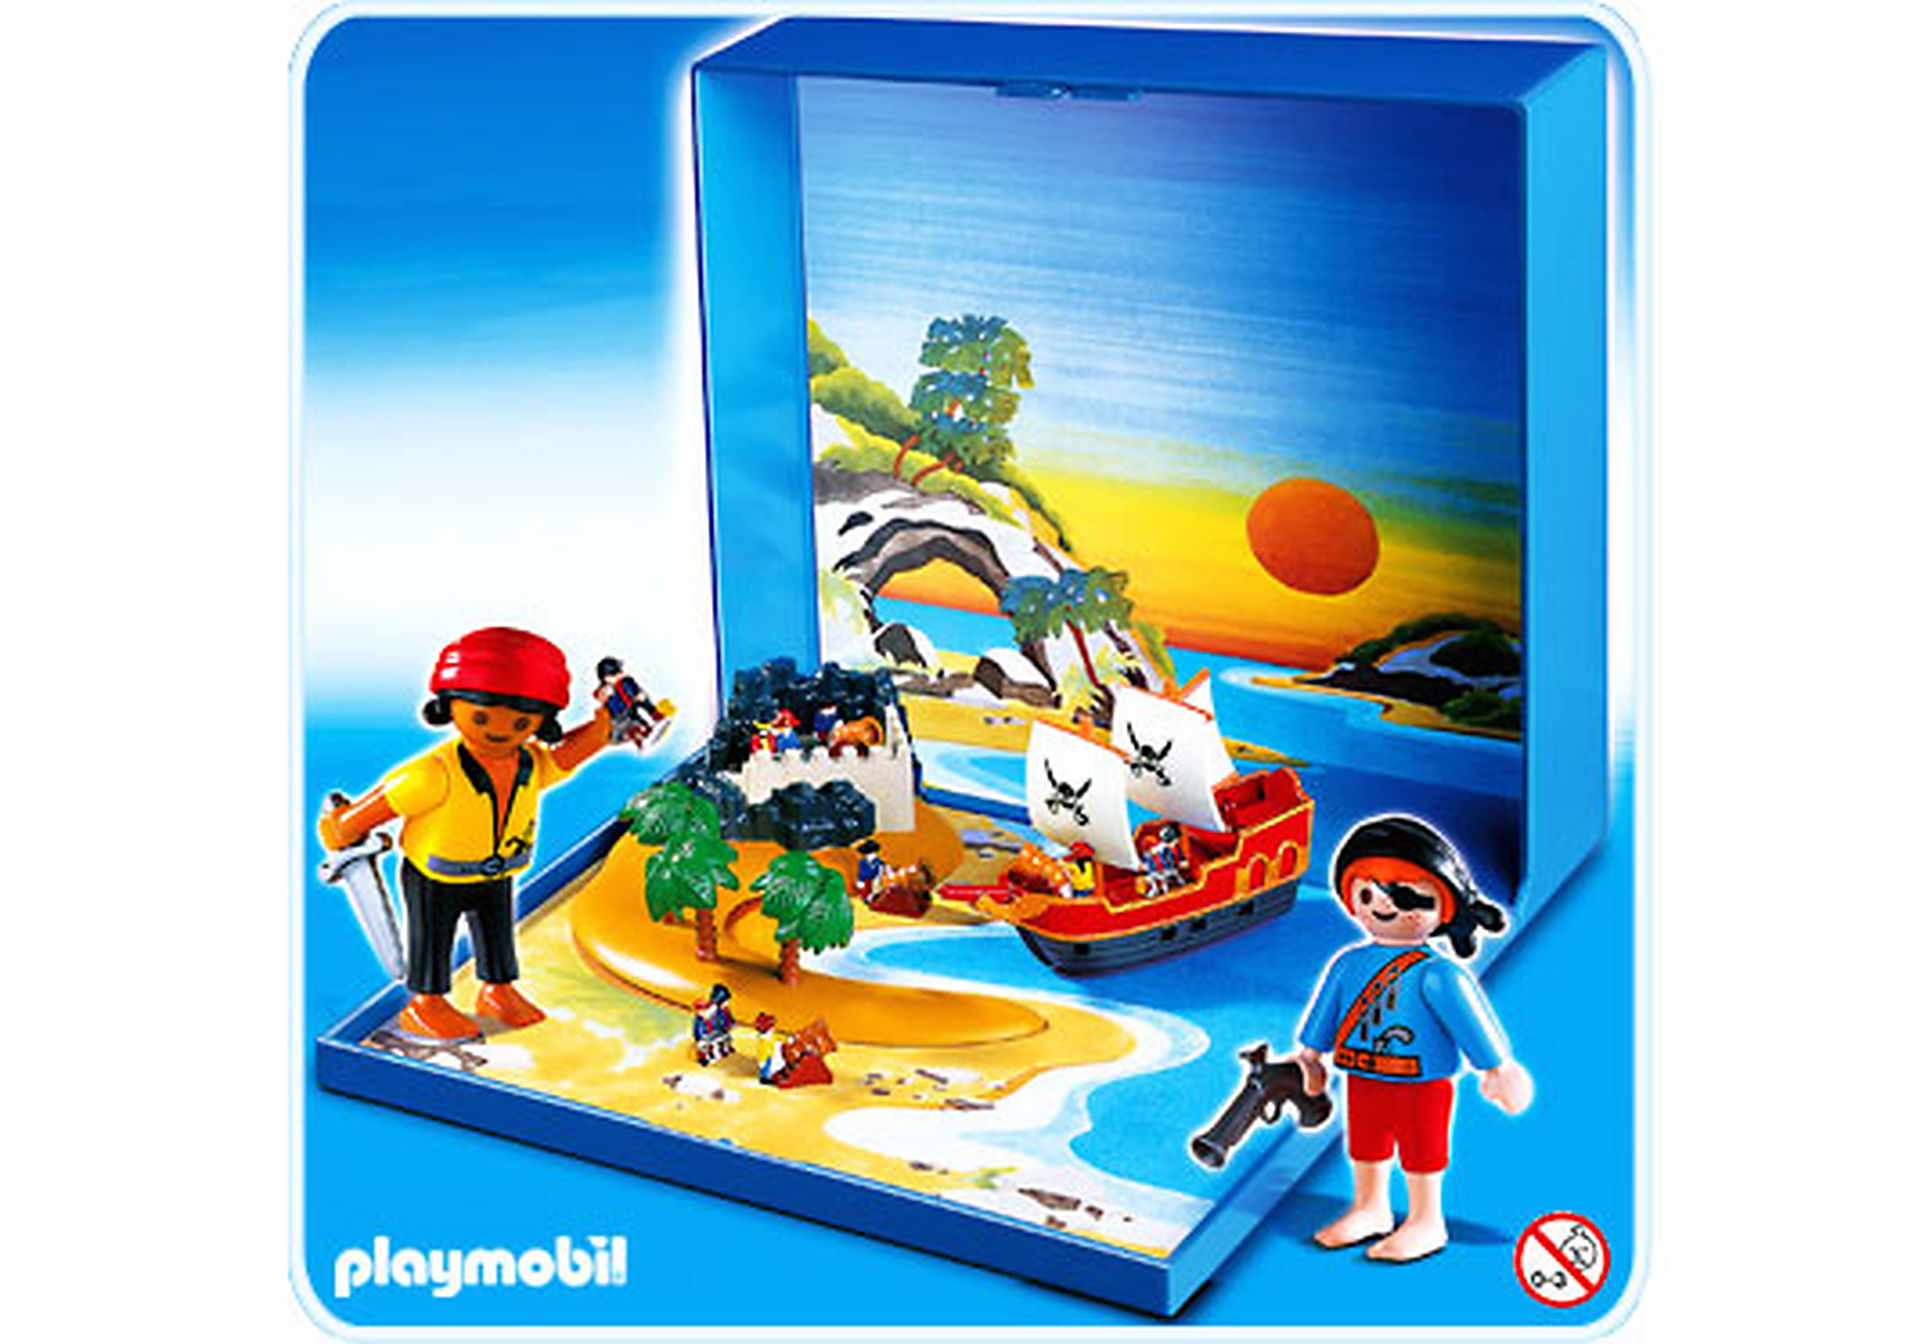 http://media.playmobil.com/i/playmobil/4331-A_product_detail/Micro Playmobil Pirates